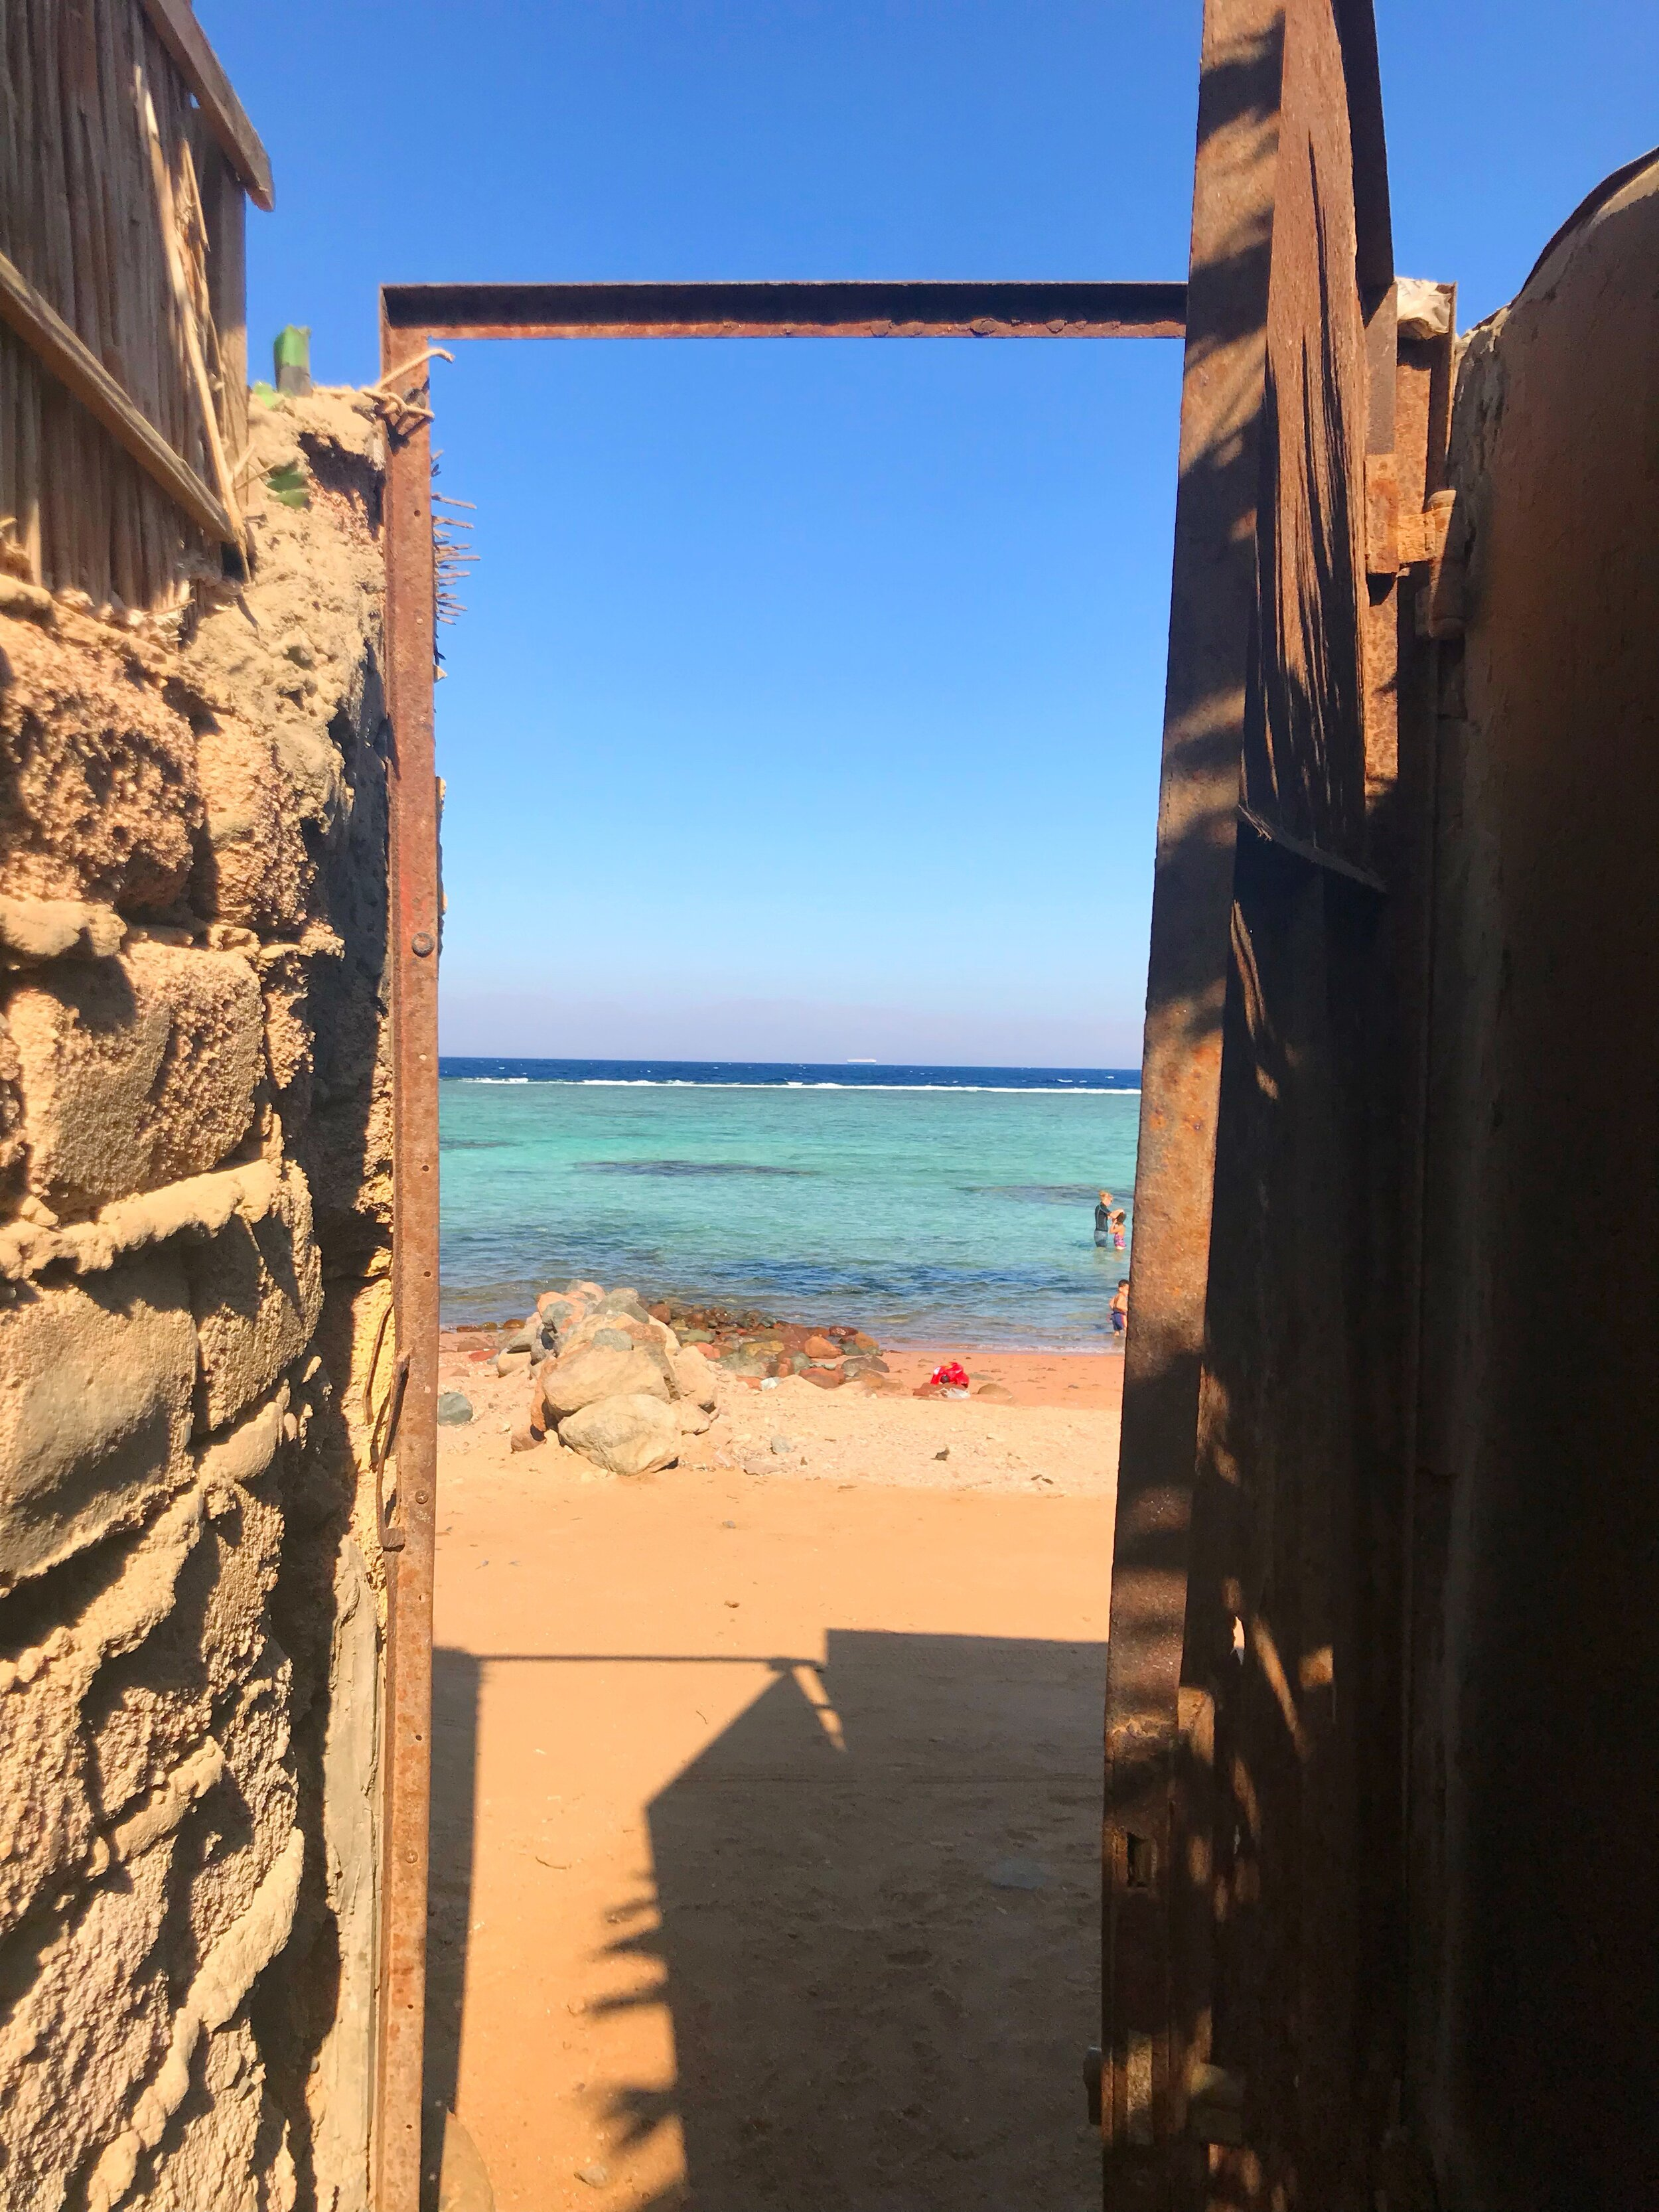 View of the Red Sea, just a short walk from our Airbnb